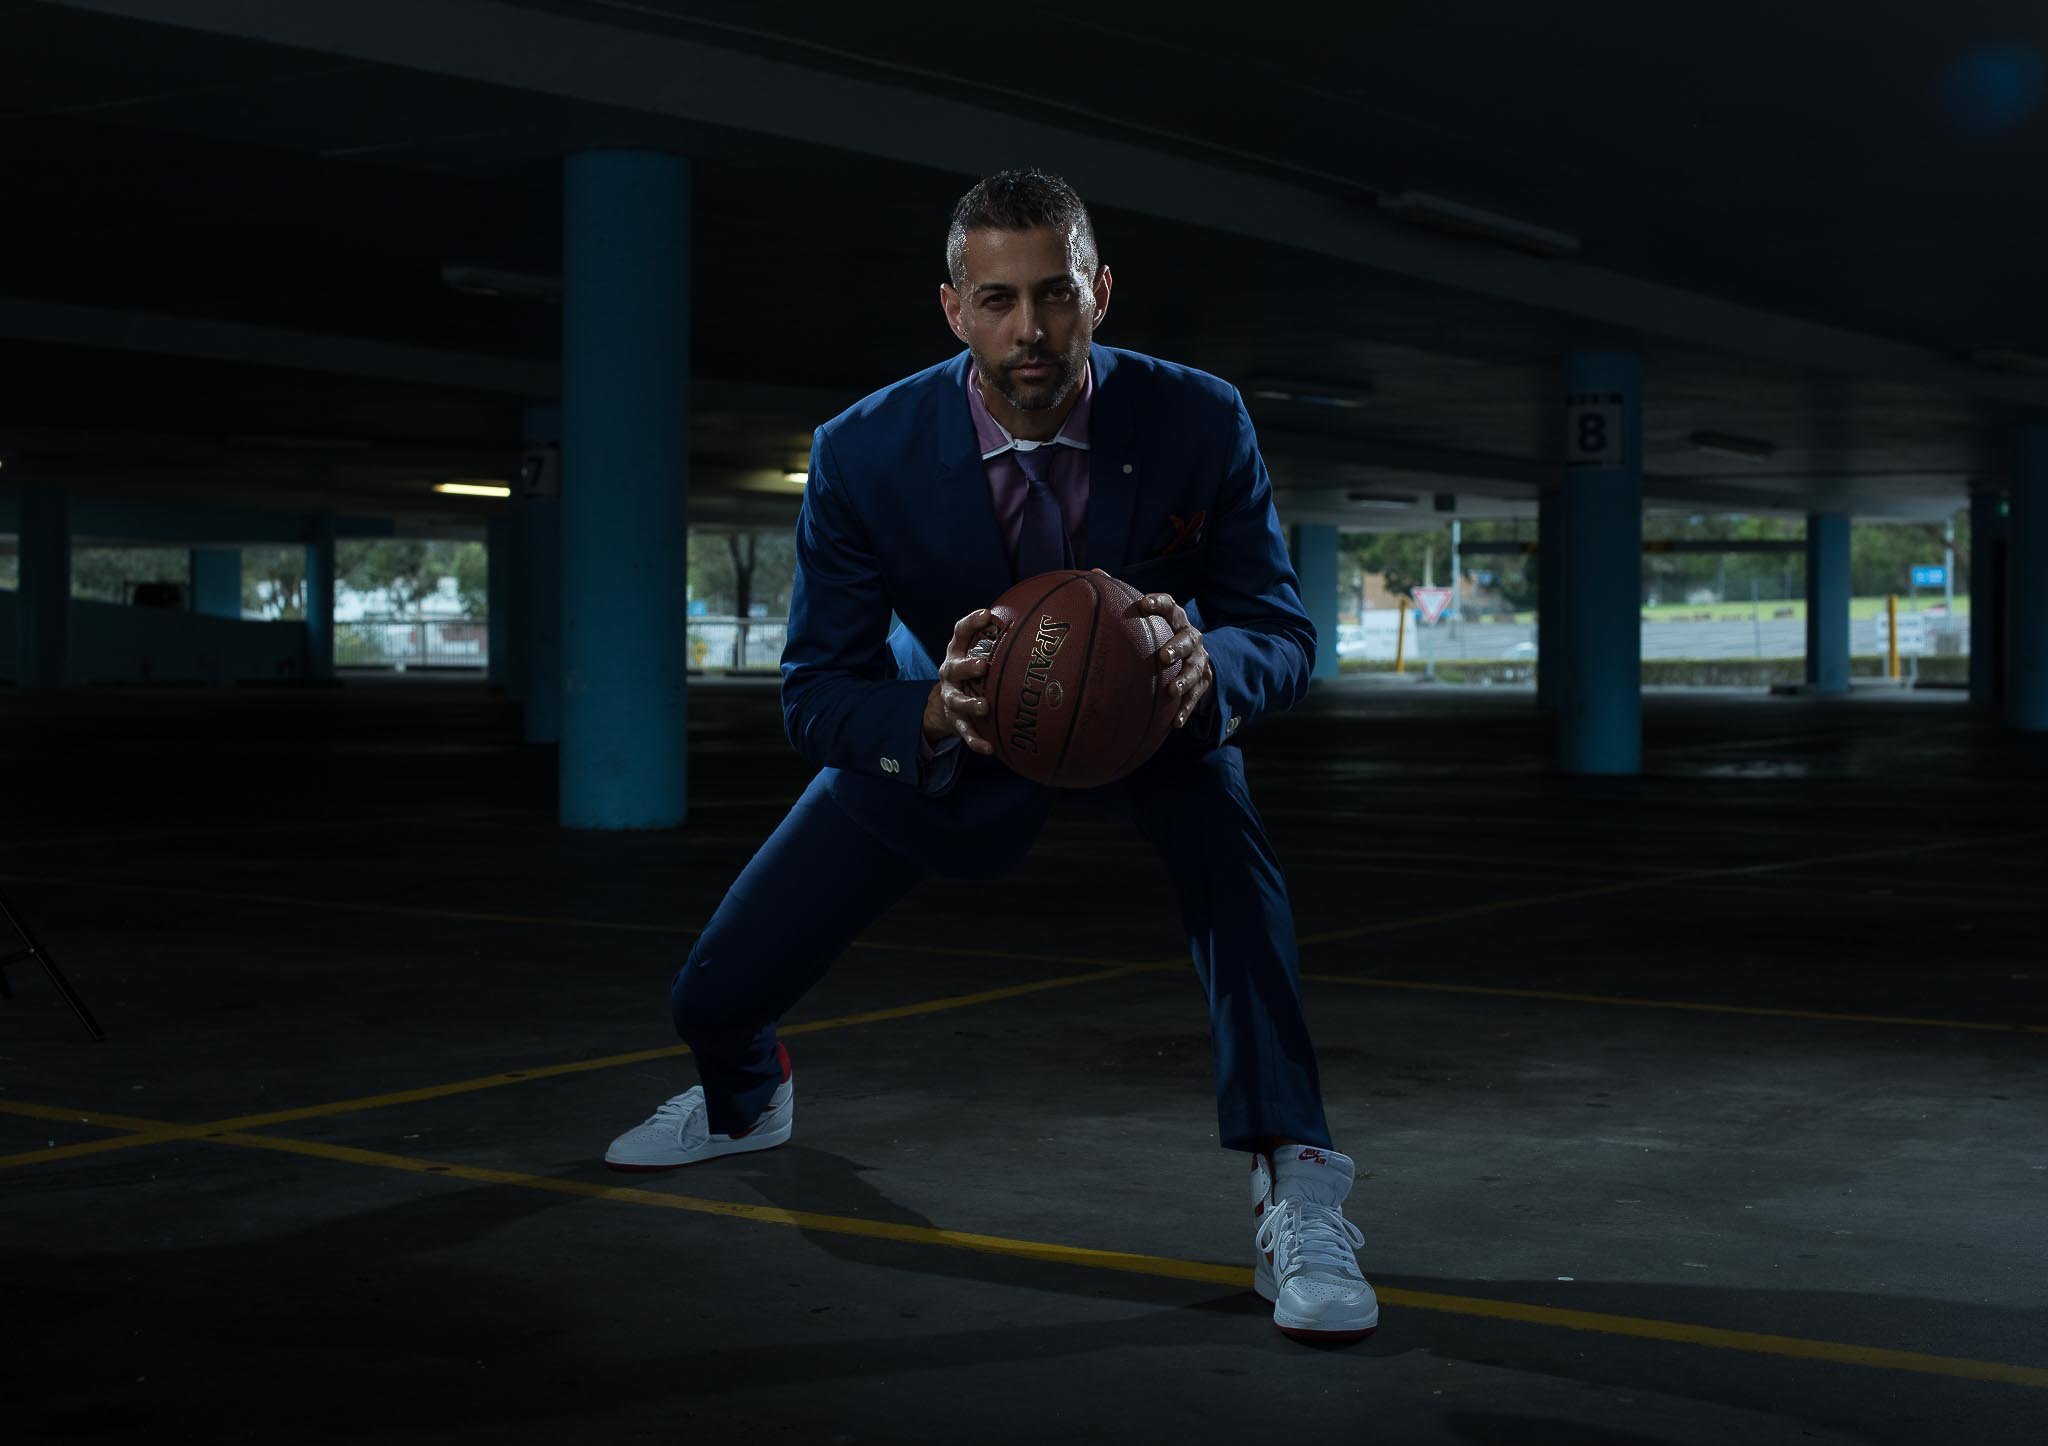 Keith wearing suit during sports couture photo shoot